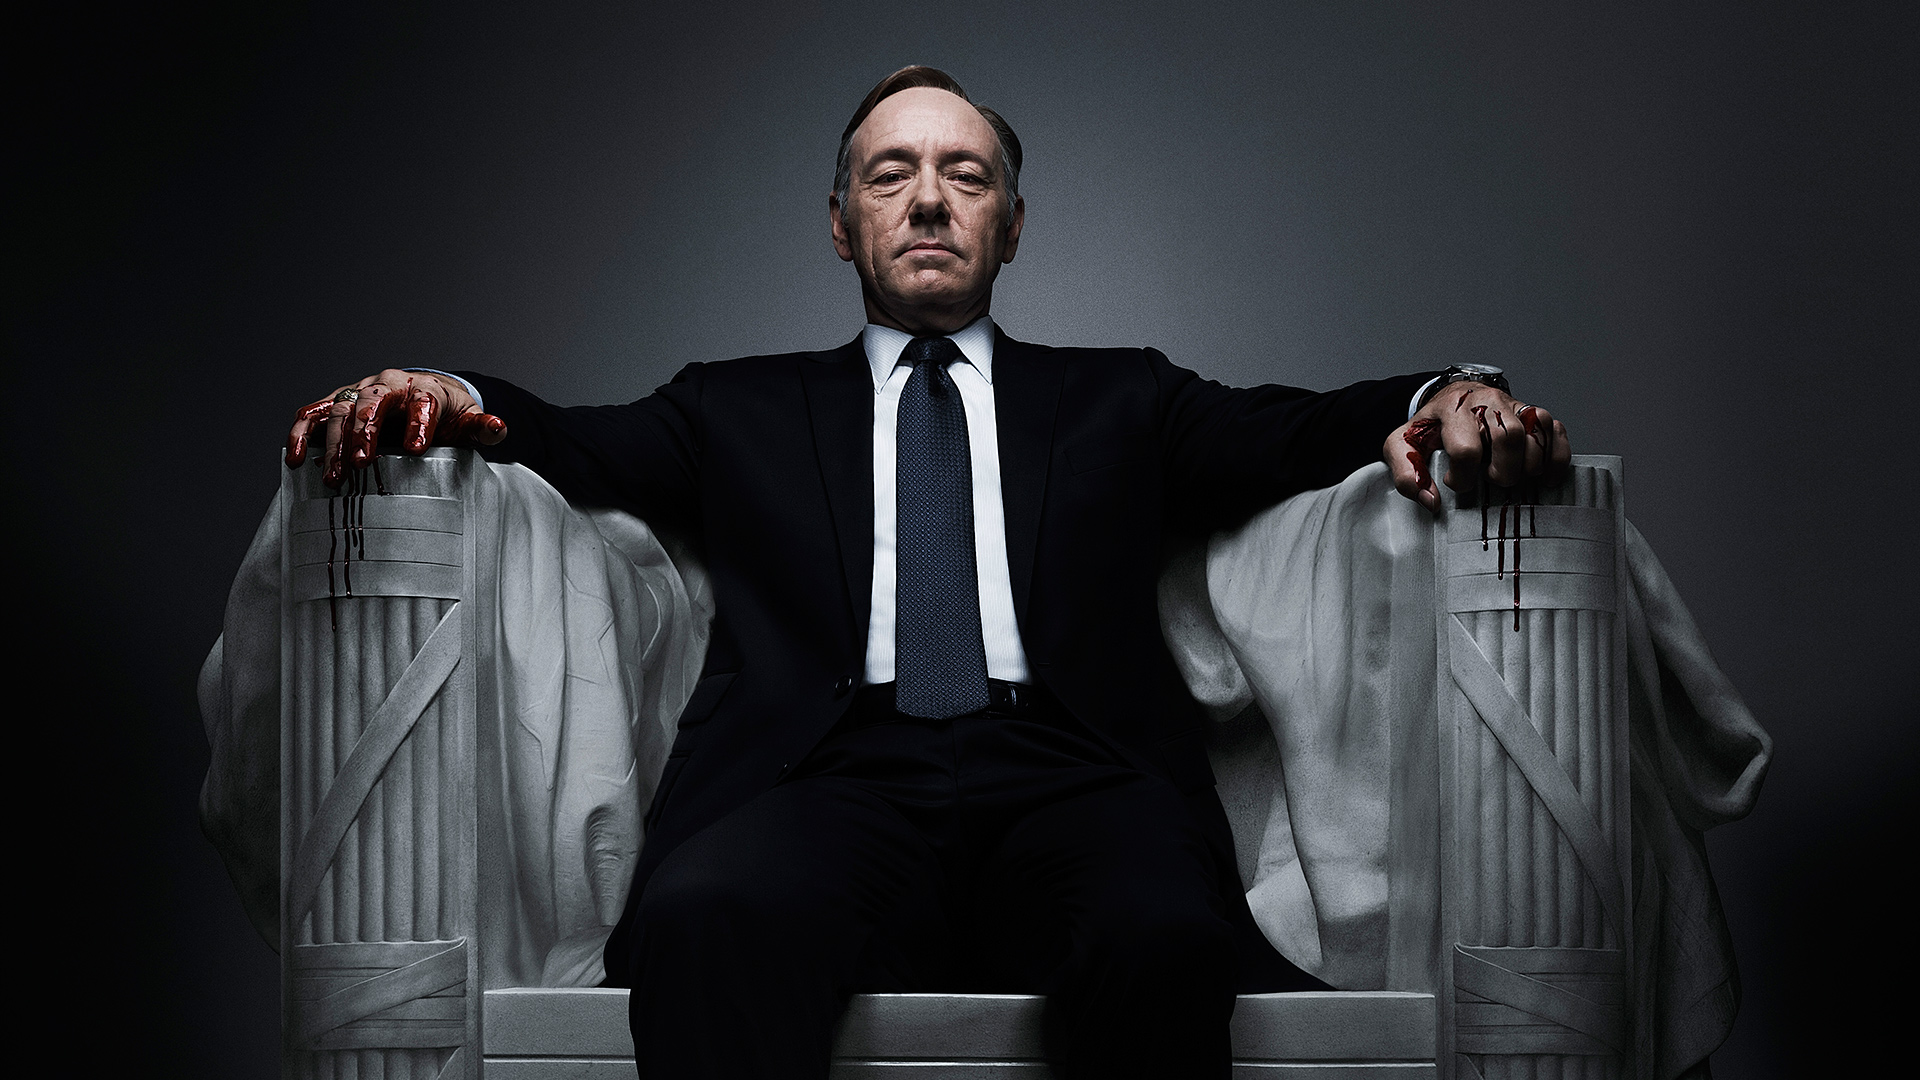 Paul Schrader parla di Kevin Spacey